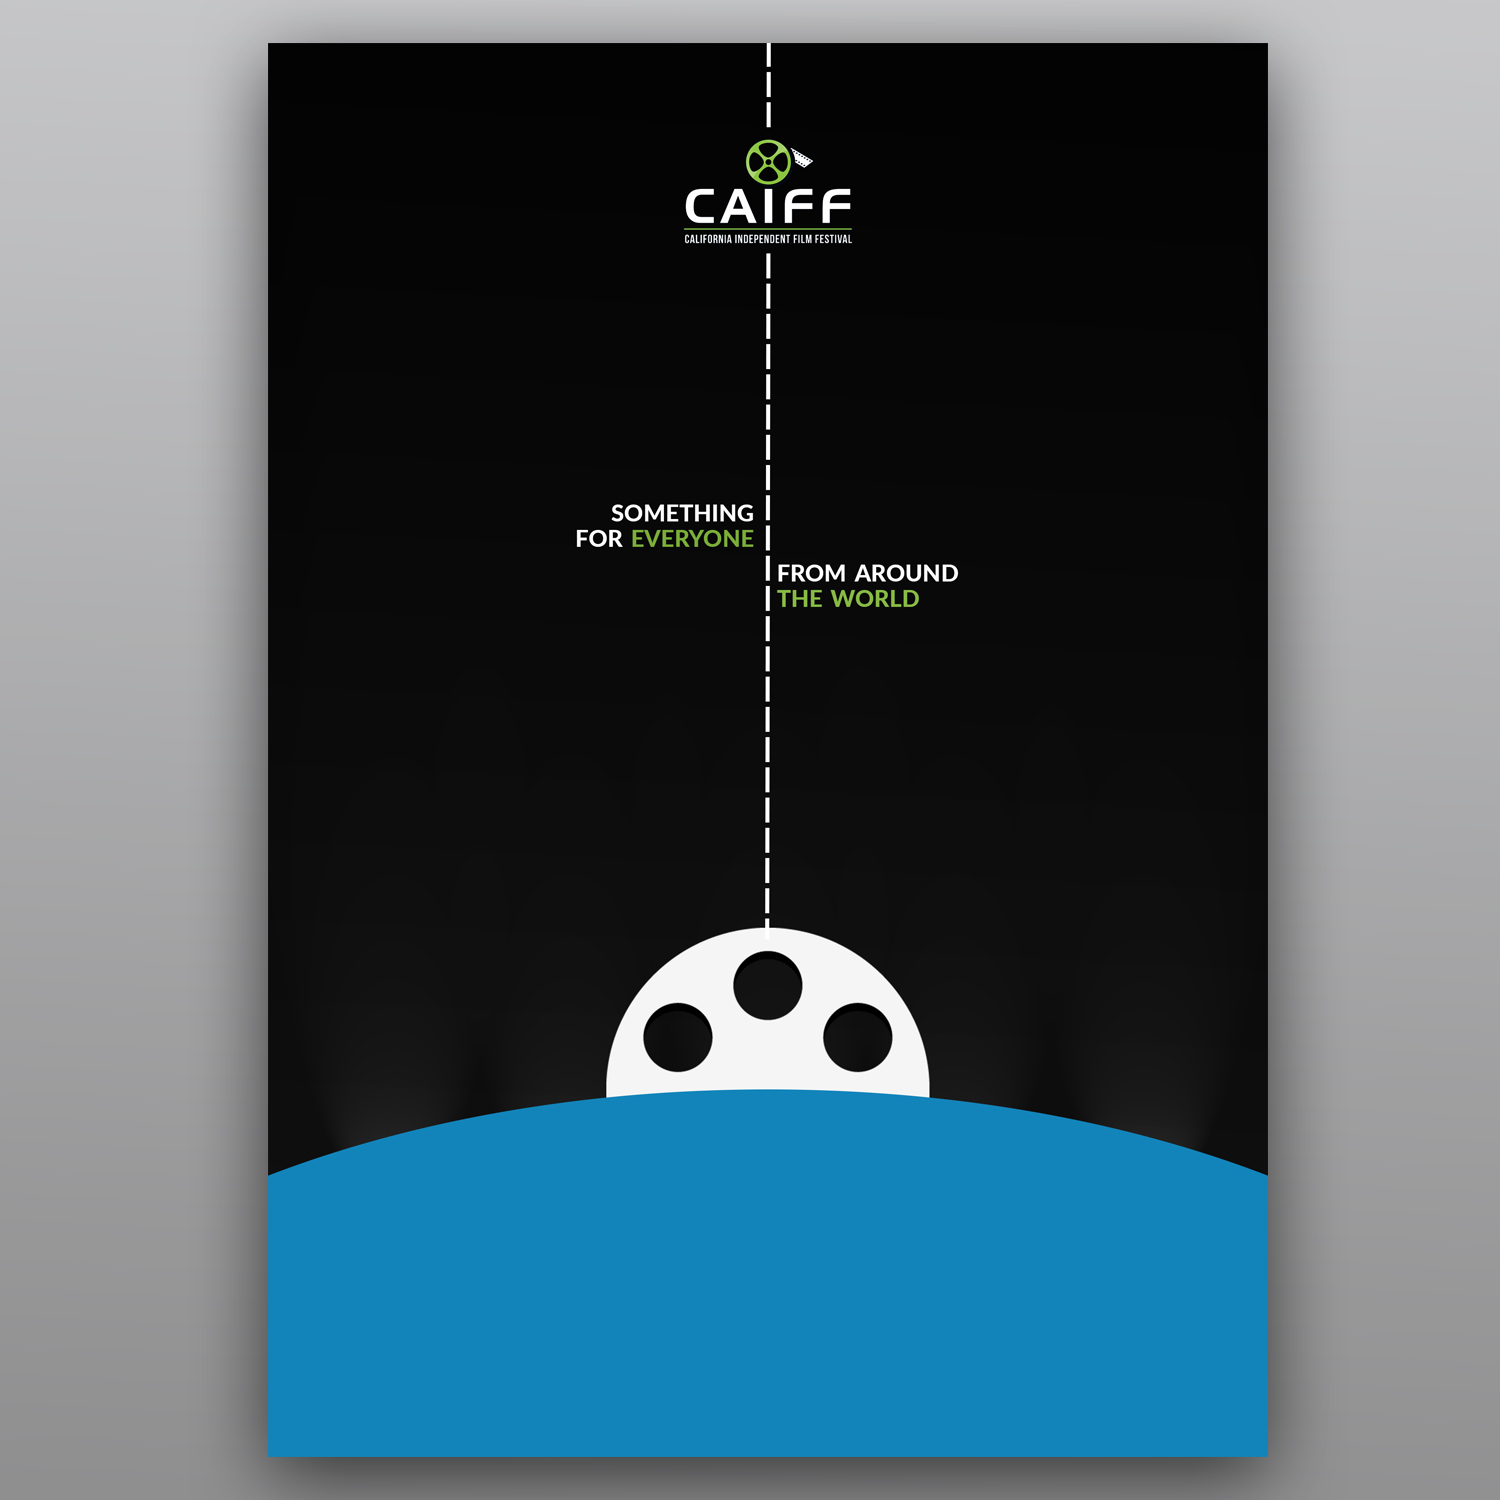 Elegant Modern Movie Poster Design For California Independent Film Festival In United States